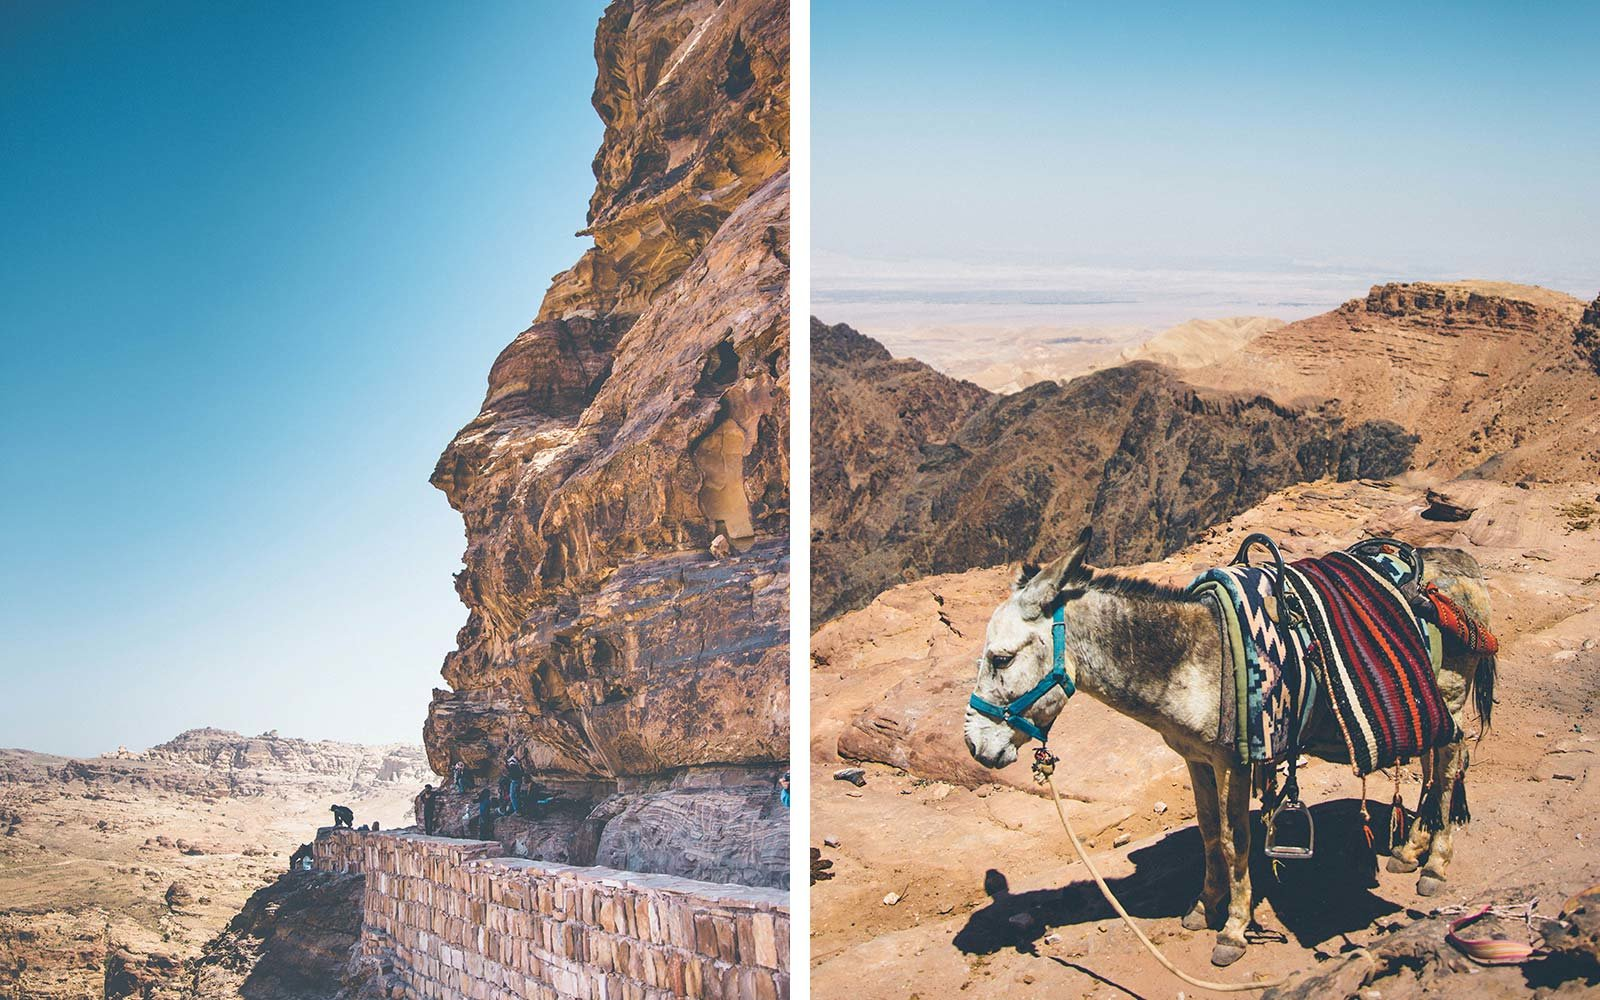 From Dana to Petra, 6 Days on The New Jordan Trail Donkey